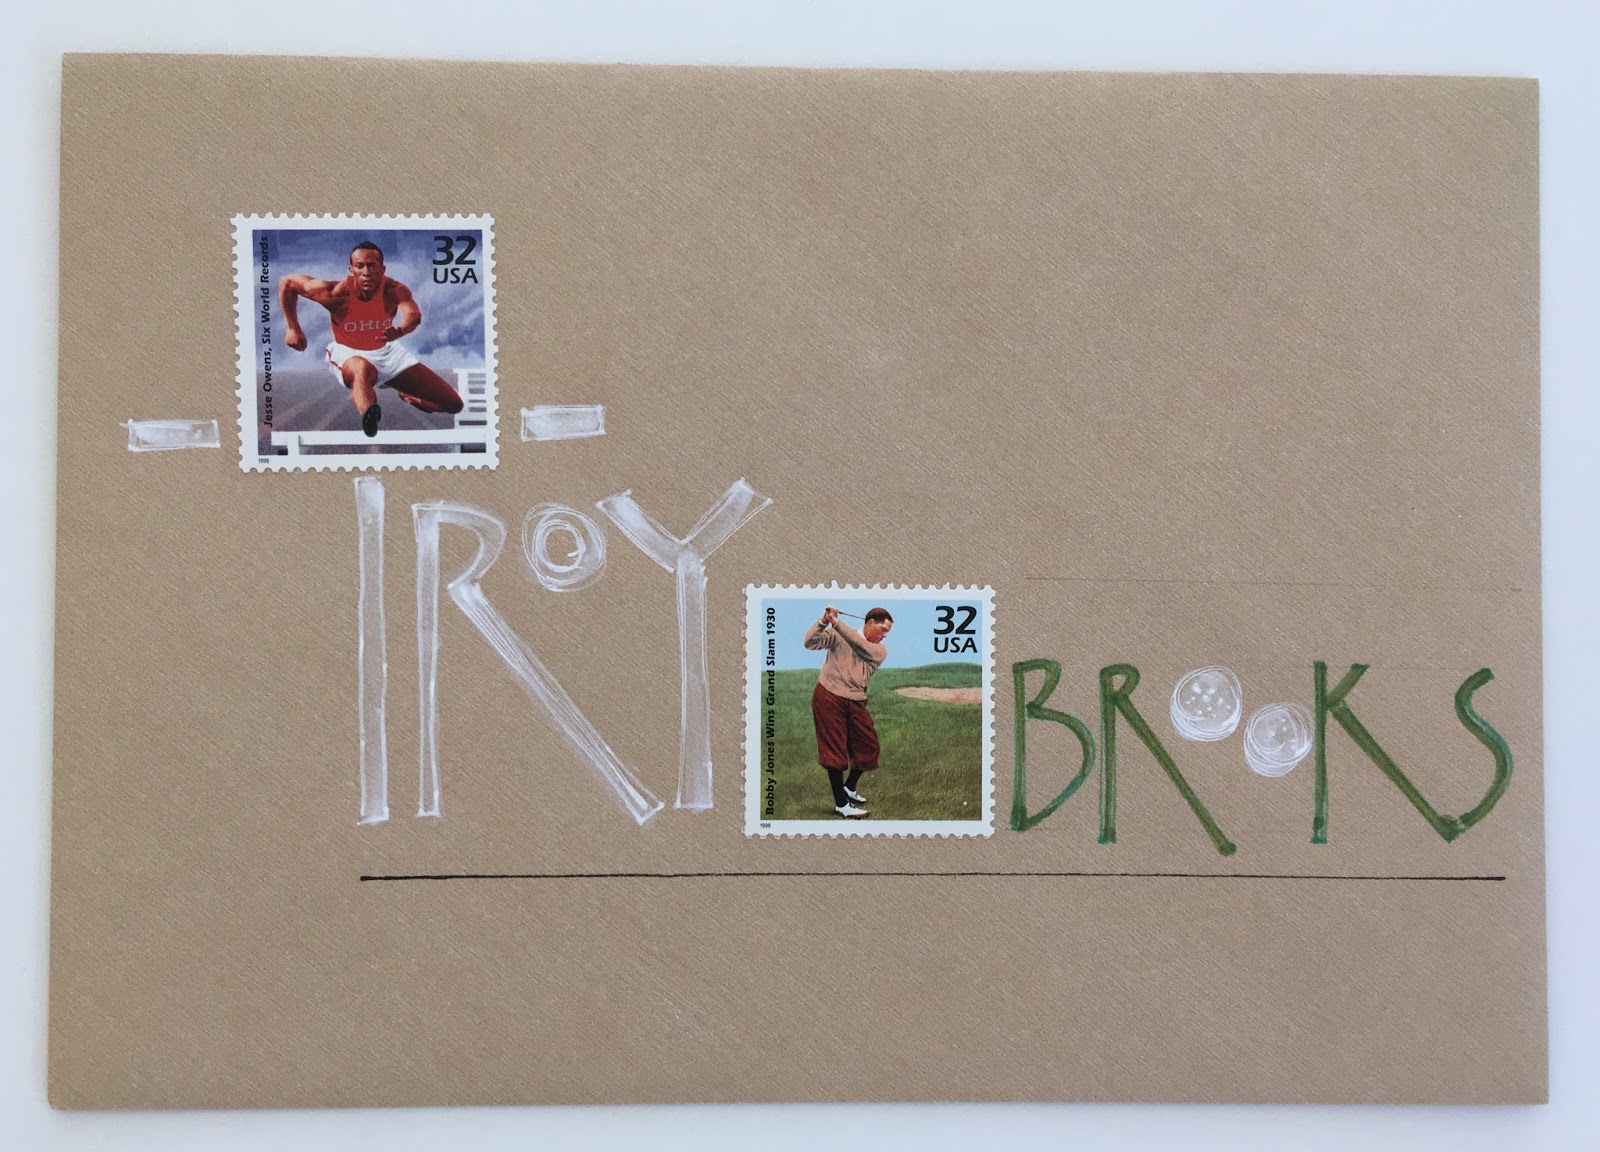 pushing the envelopes aug exchange troy s sports stamps